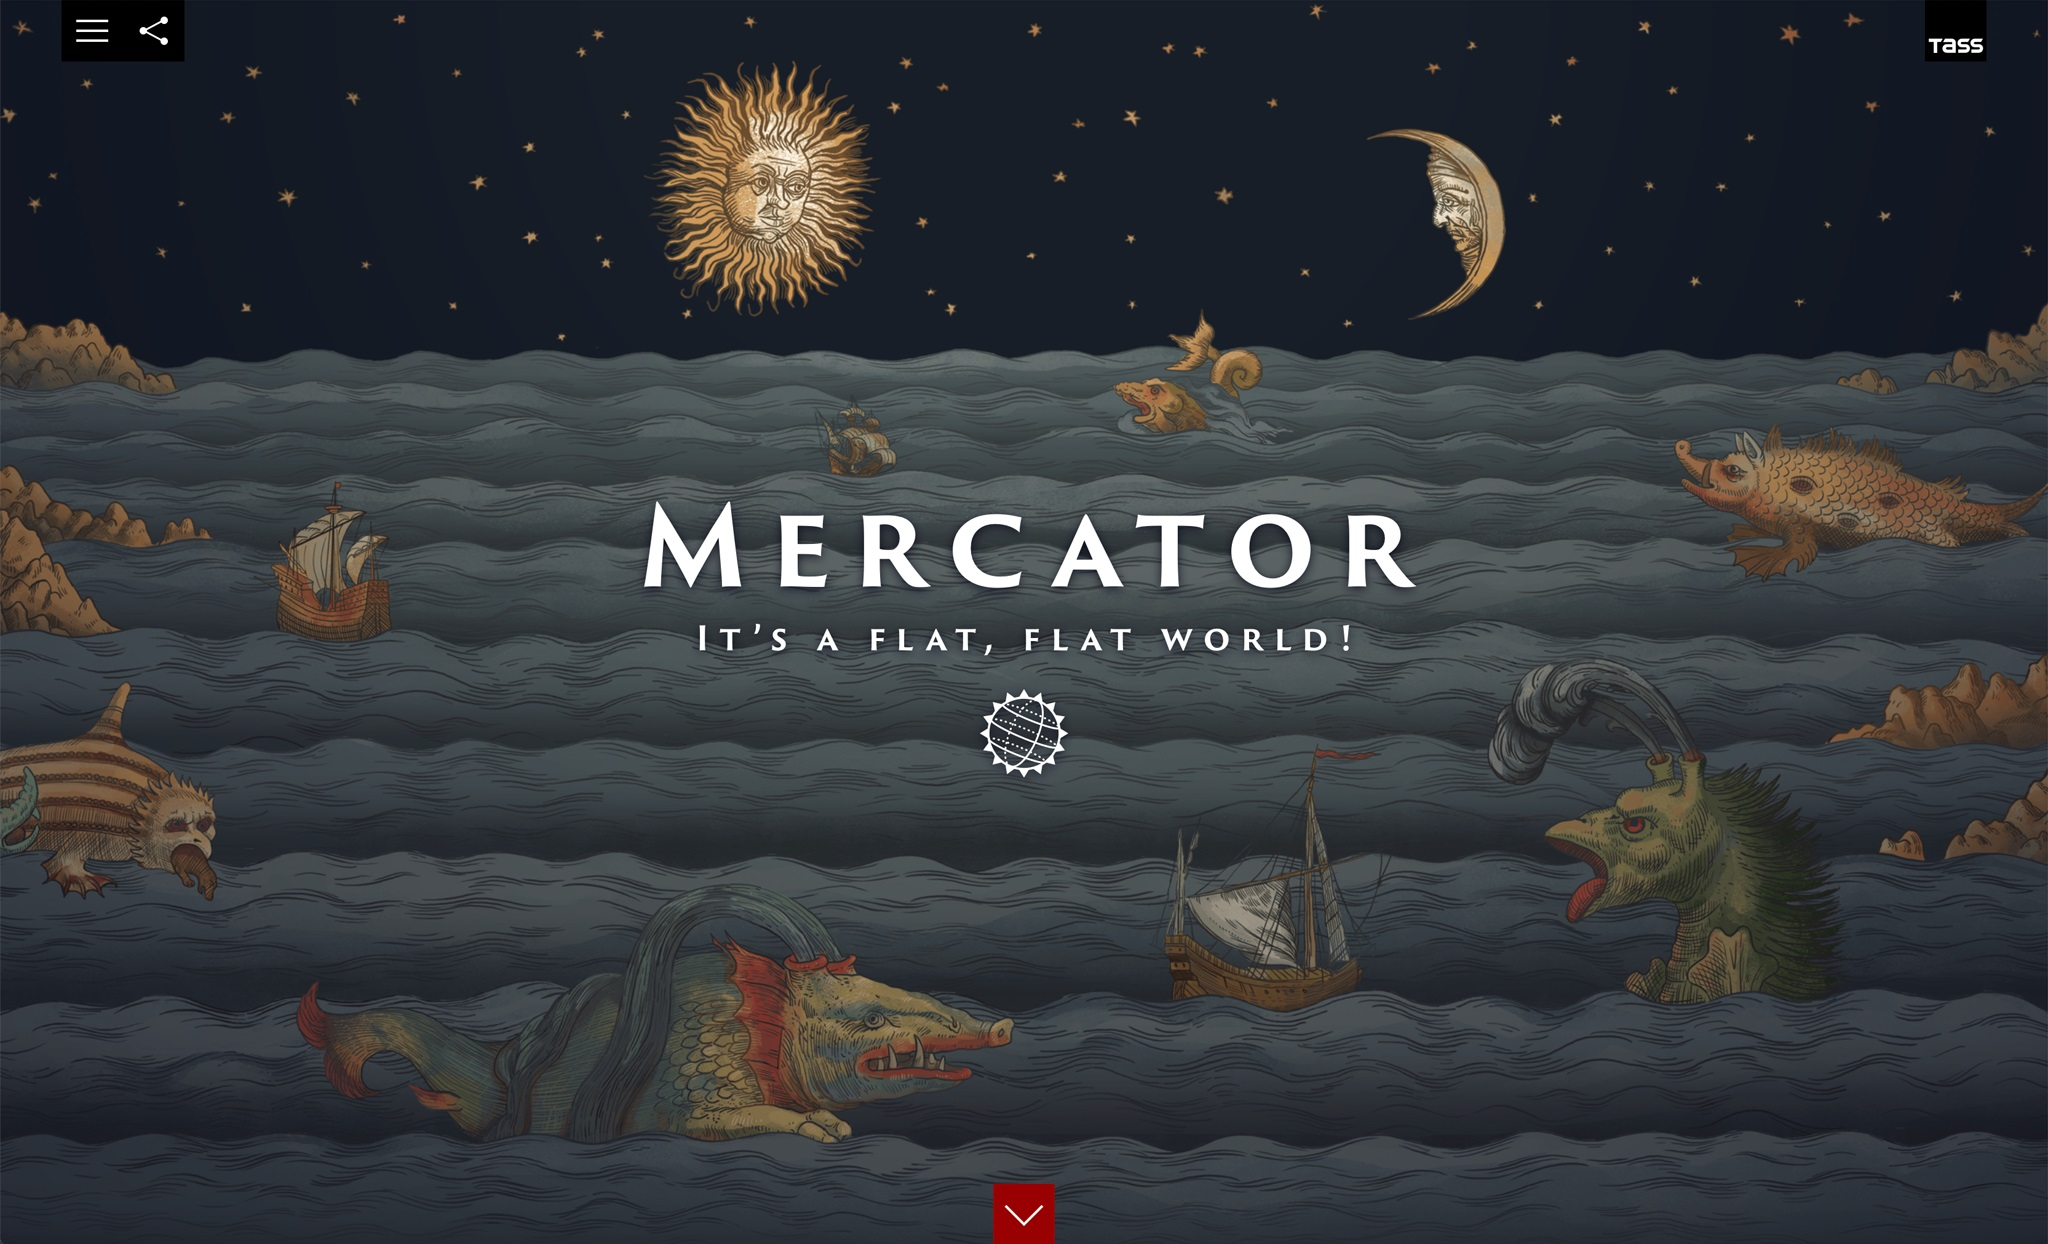 Mercator. It's a Flat, Flat World